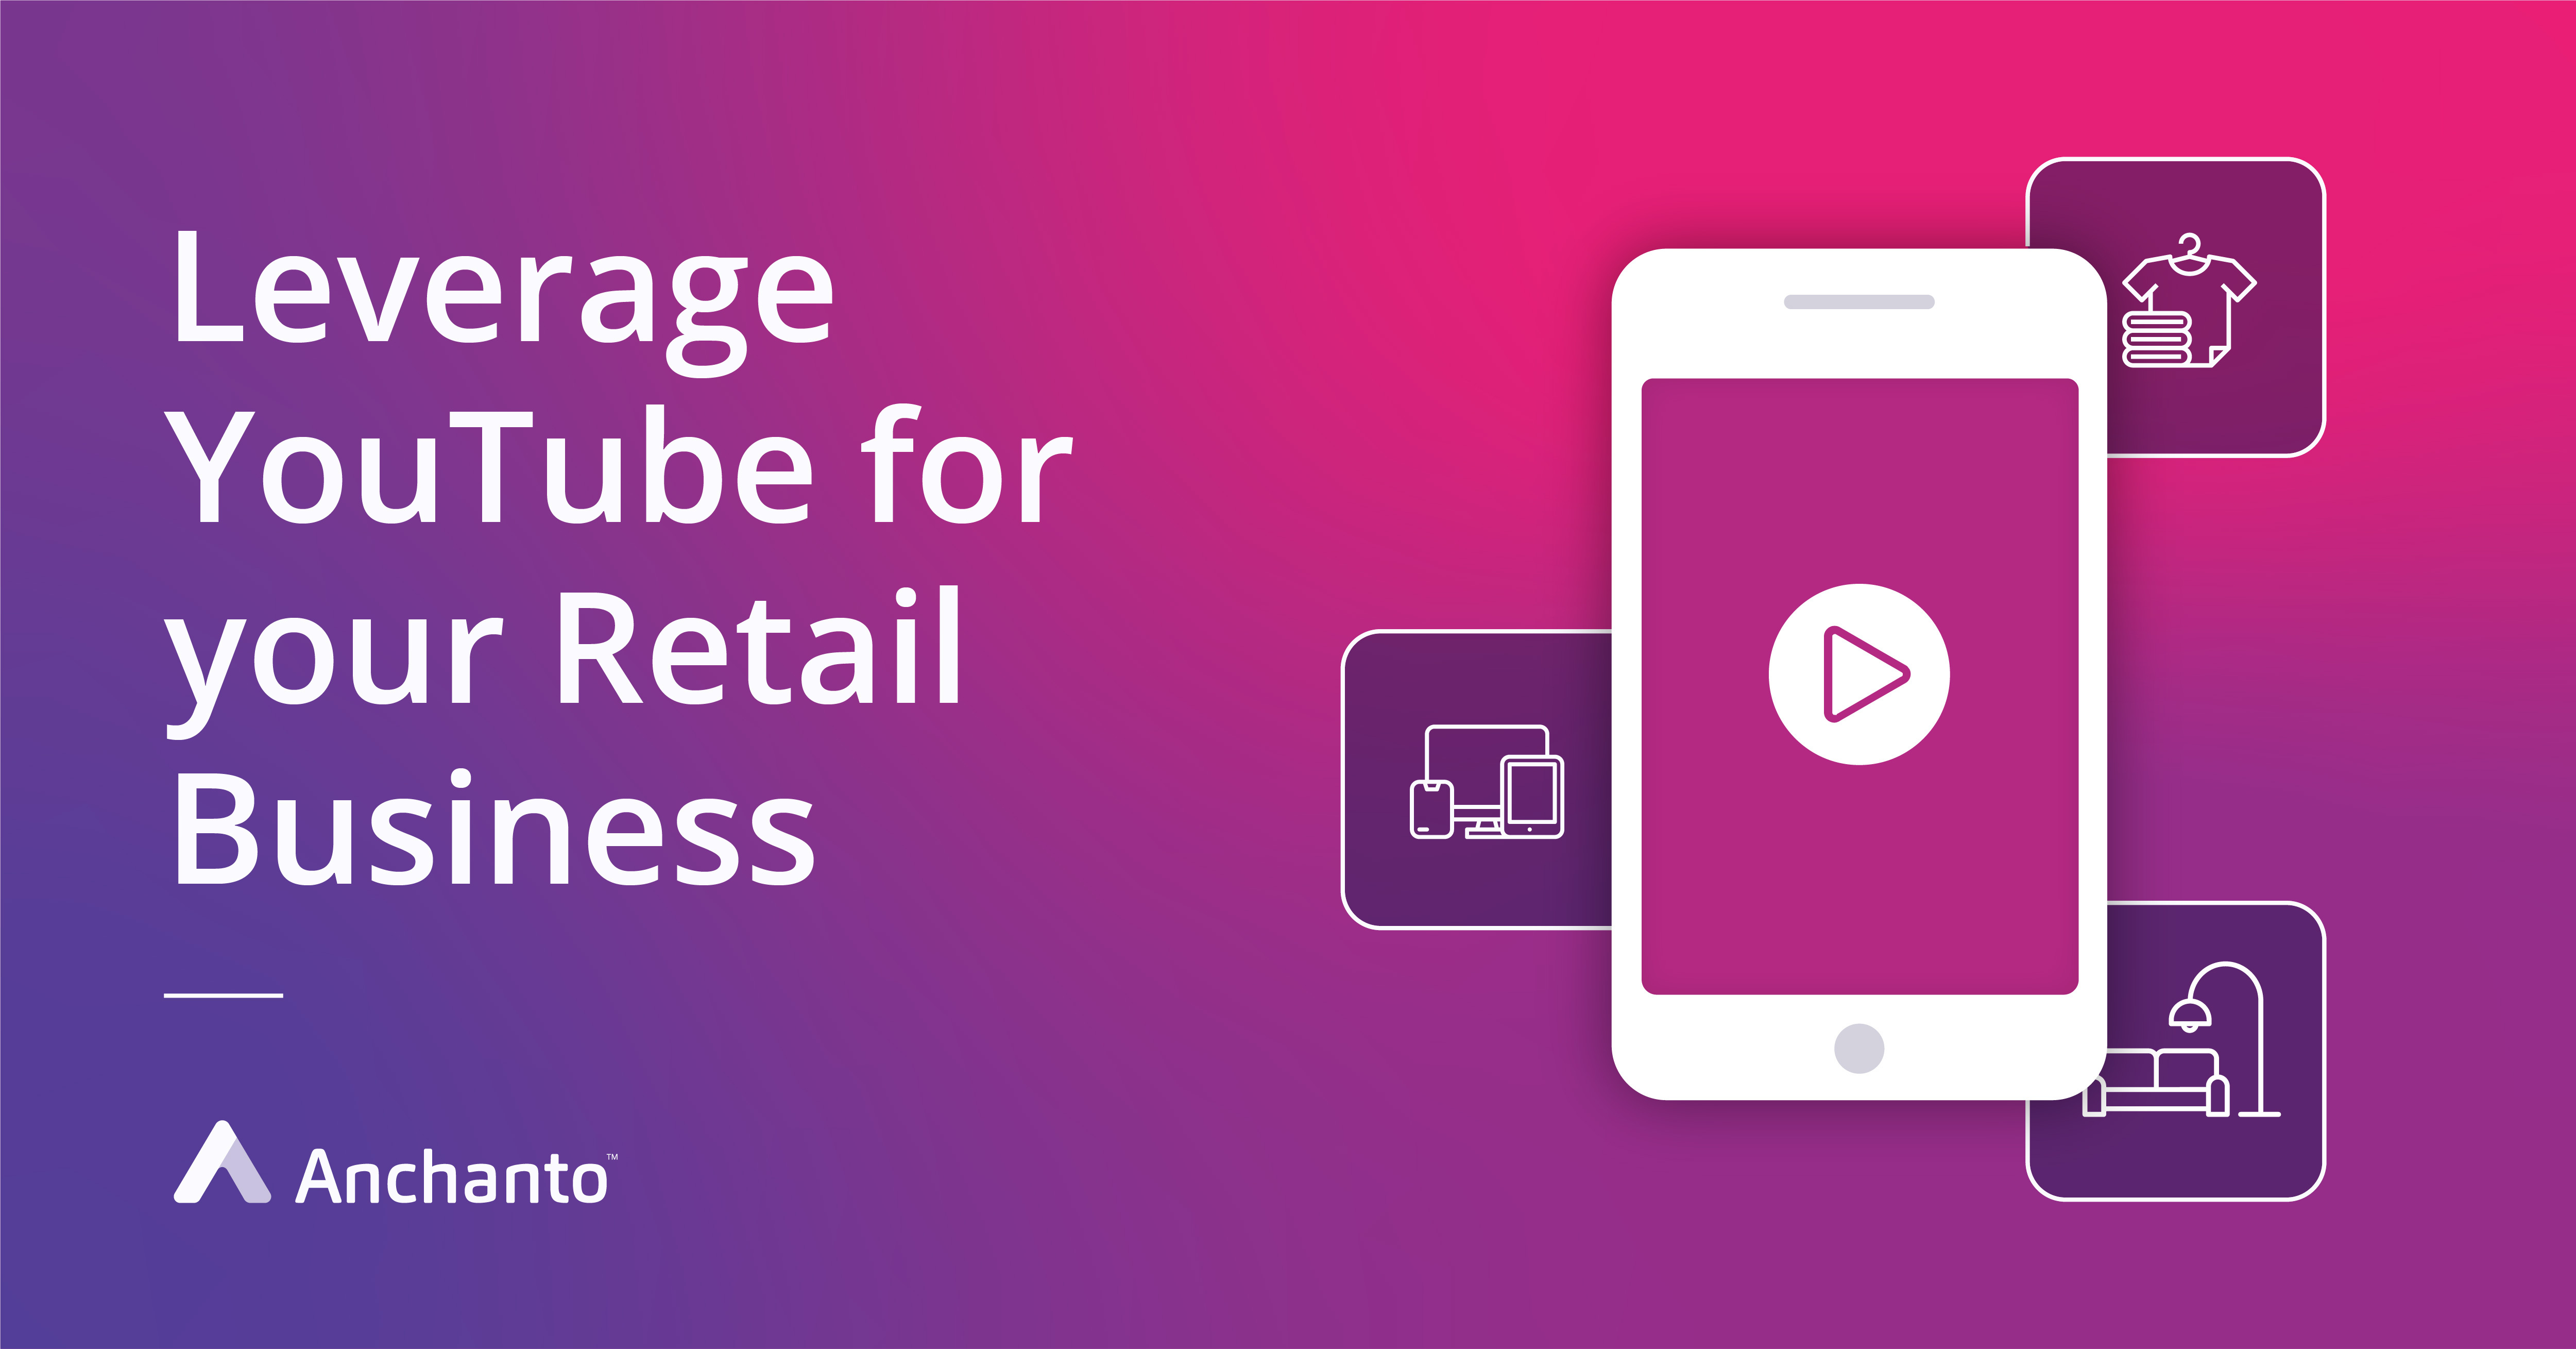 Youtube for Retail Business